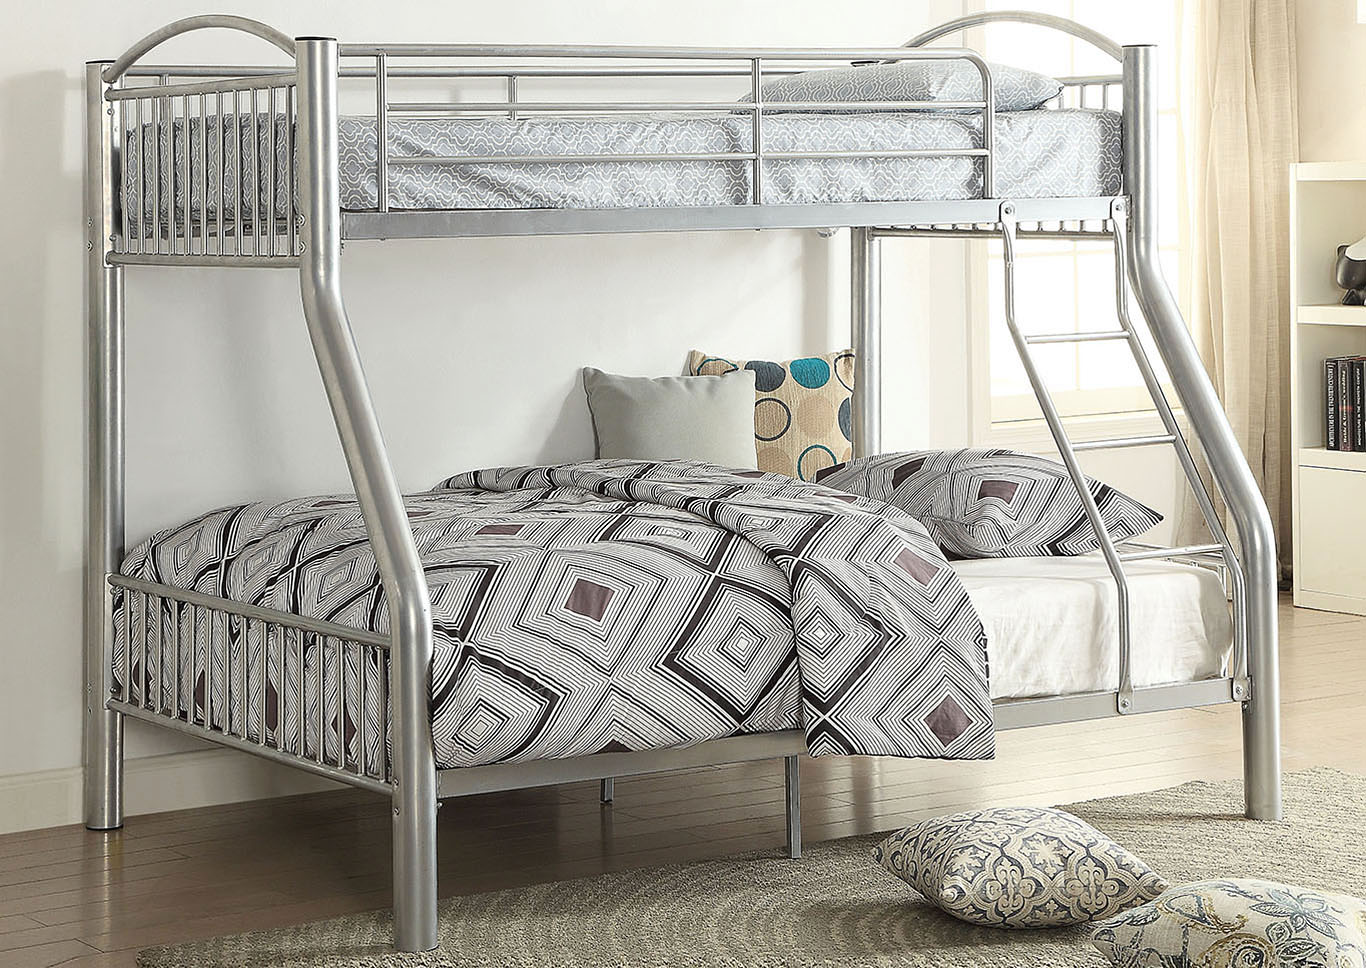 Cayelynn Silver Twin/Full Bunk Bed,Acme